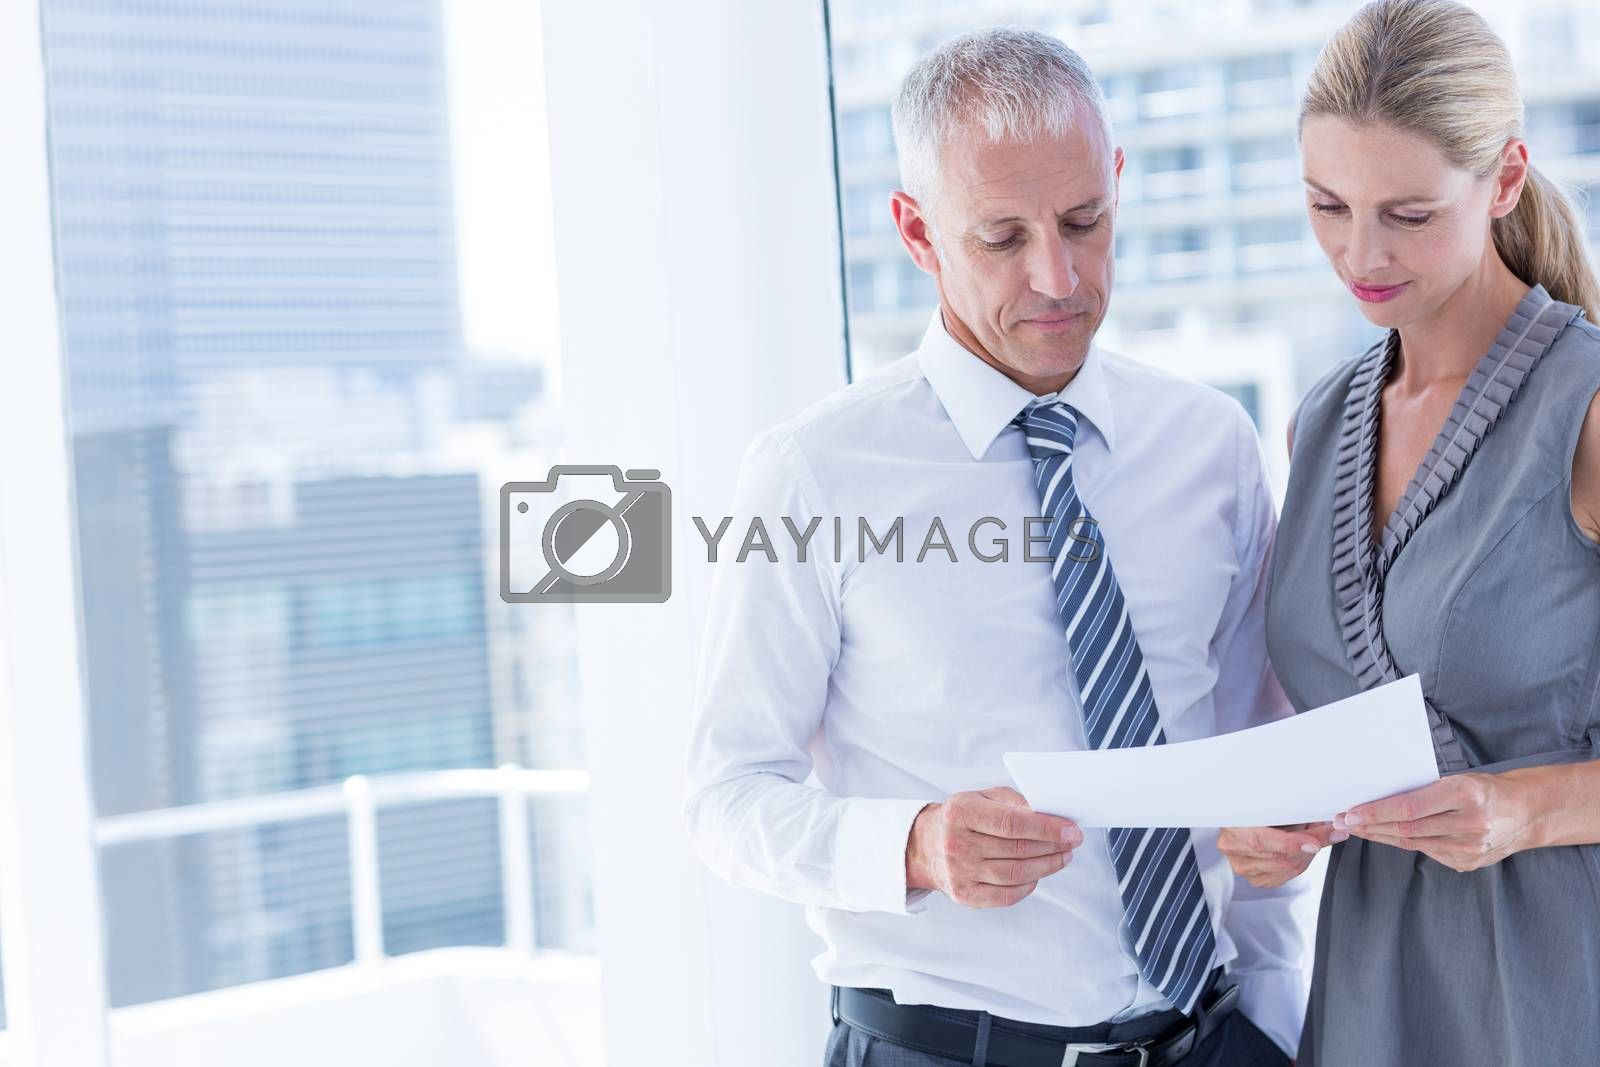 Royalty free image of Business people talking over a paper sheet by Wavebreakmedia